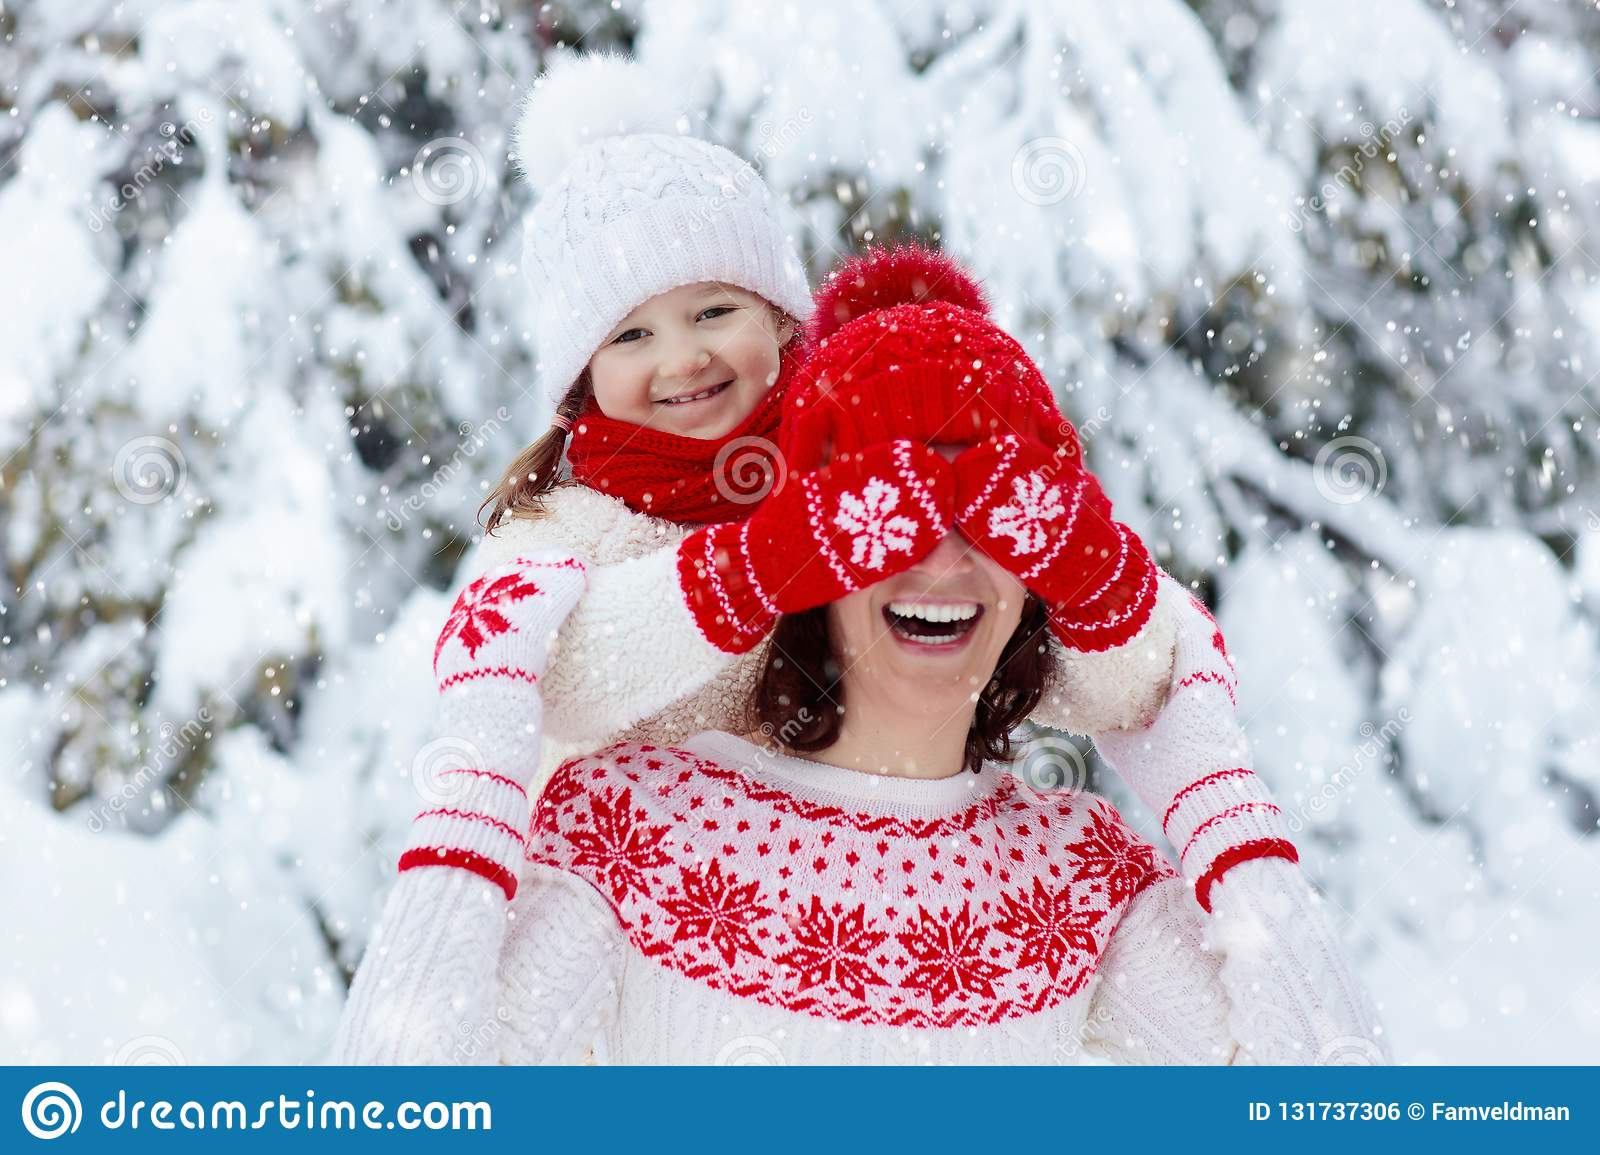 Mother and child in knitted winter hats play in snow on family Christmas vacation. Handmade wool hat and scarf for mom and kid.